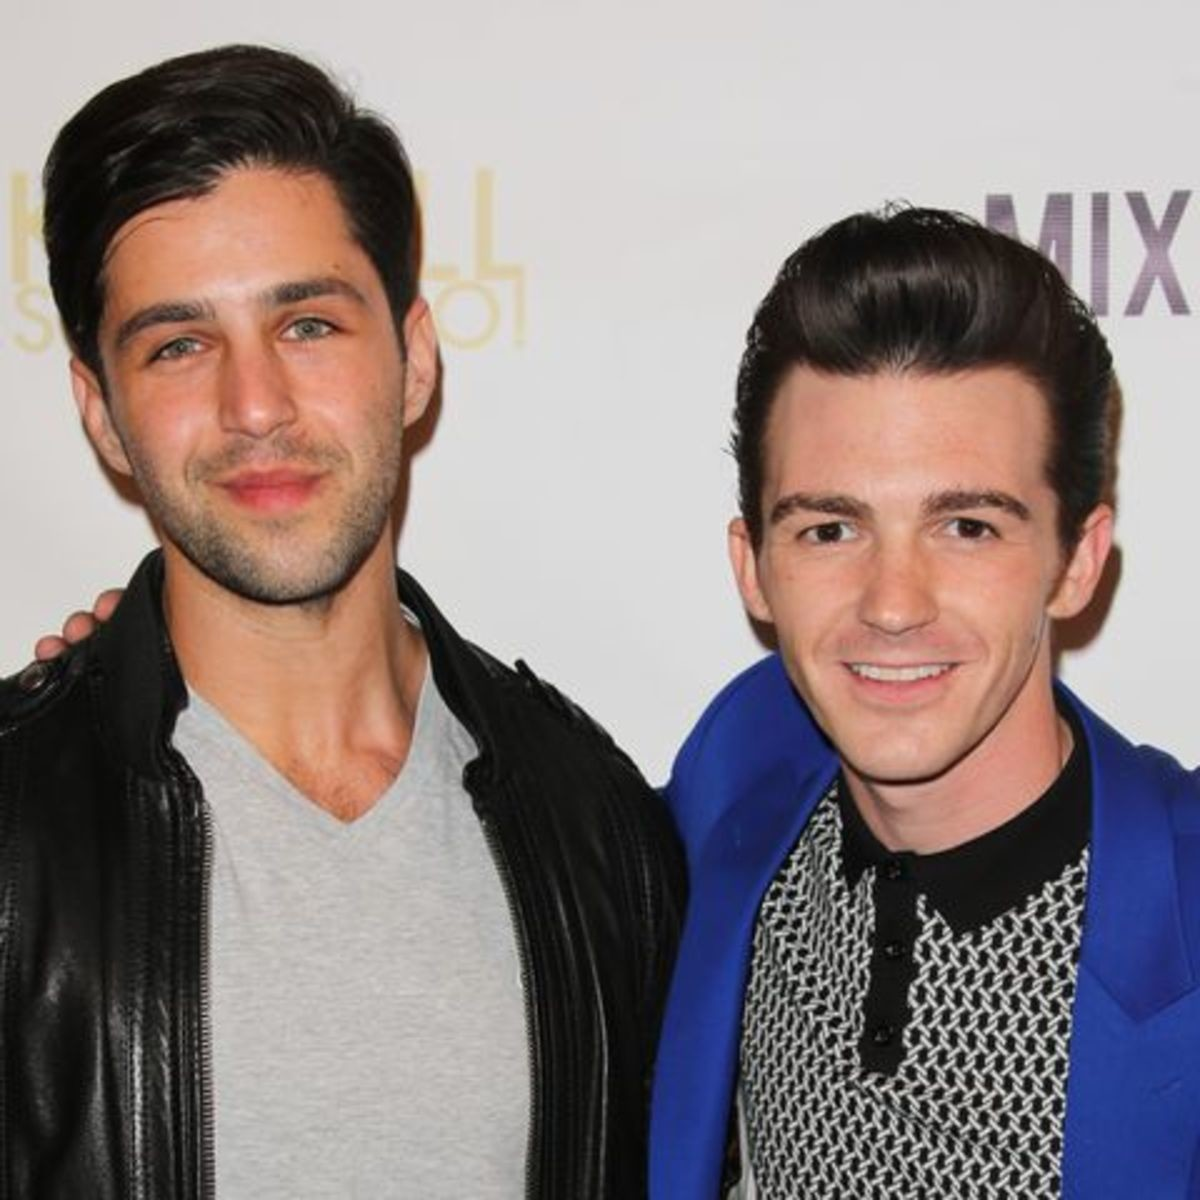 Drake and Josh star hints at reunion. What are your guys thoughts https://www.digitalspy.com/tv/ustv/a26840622/drake-bell-and-josh-peck-hints-reunion/.. Well personally I never thought that I'd be so simple